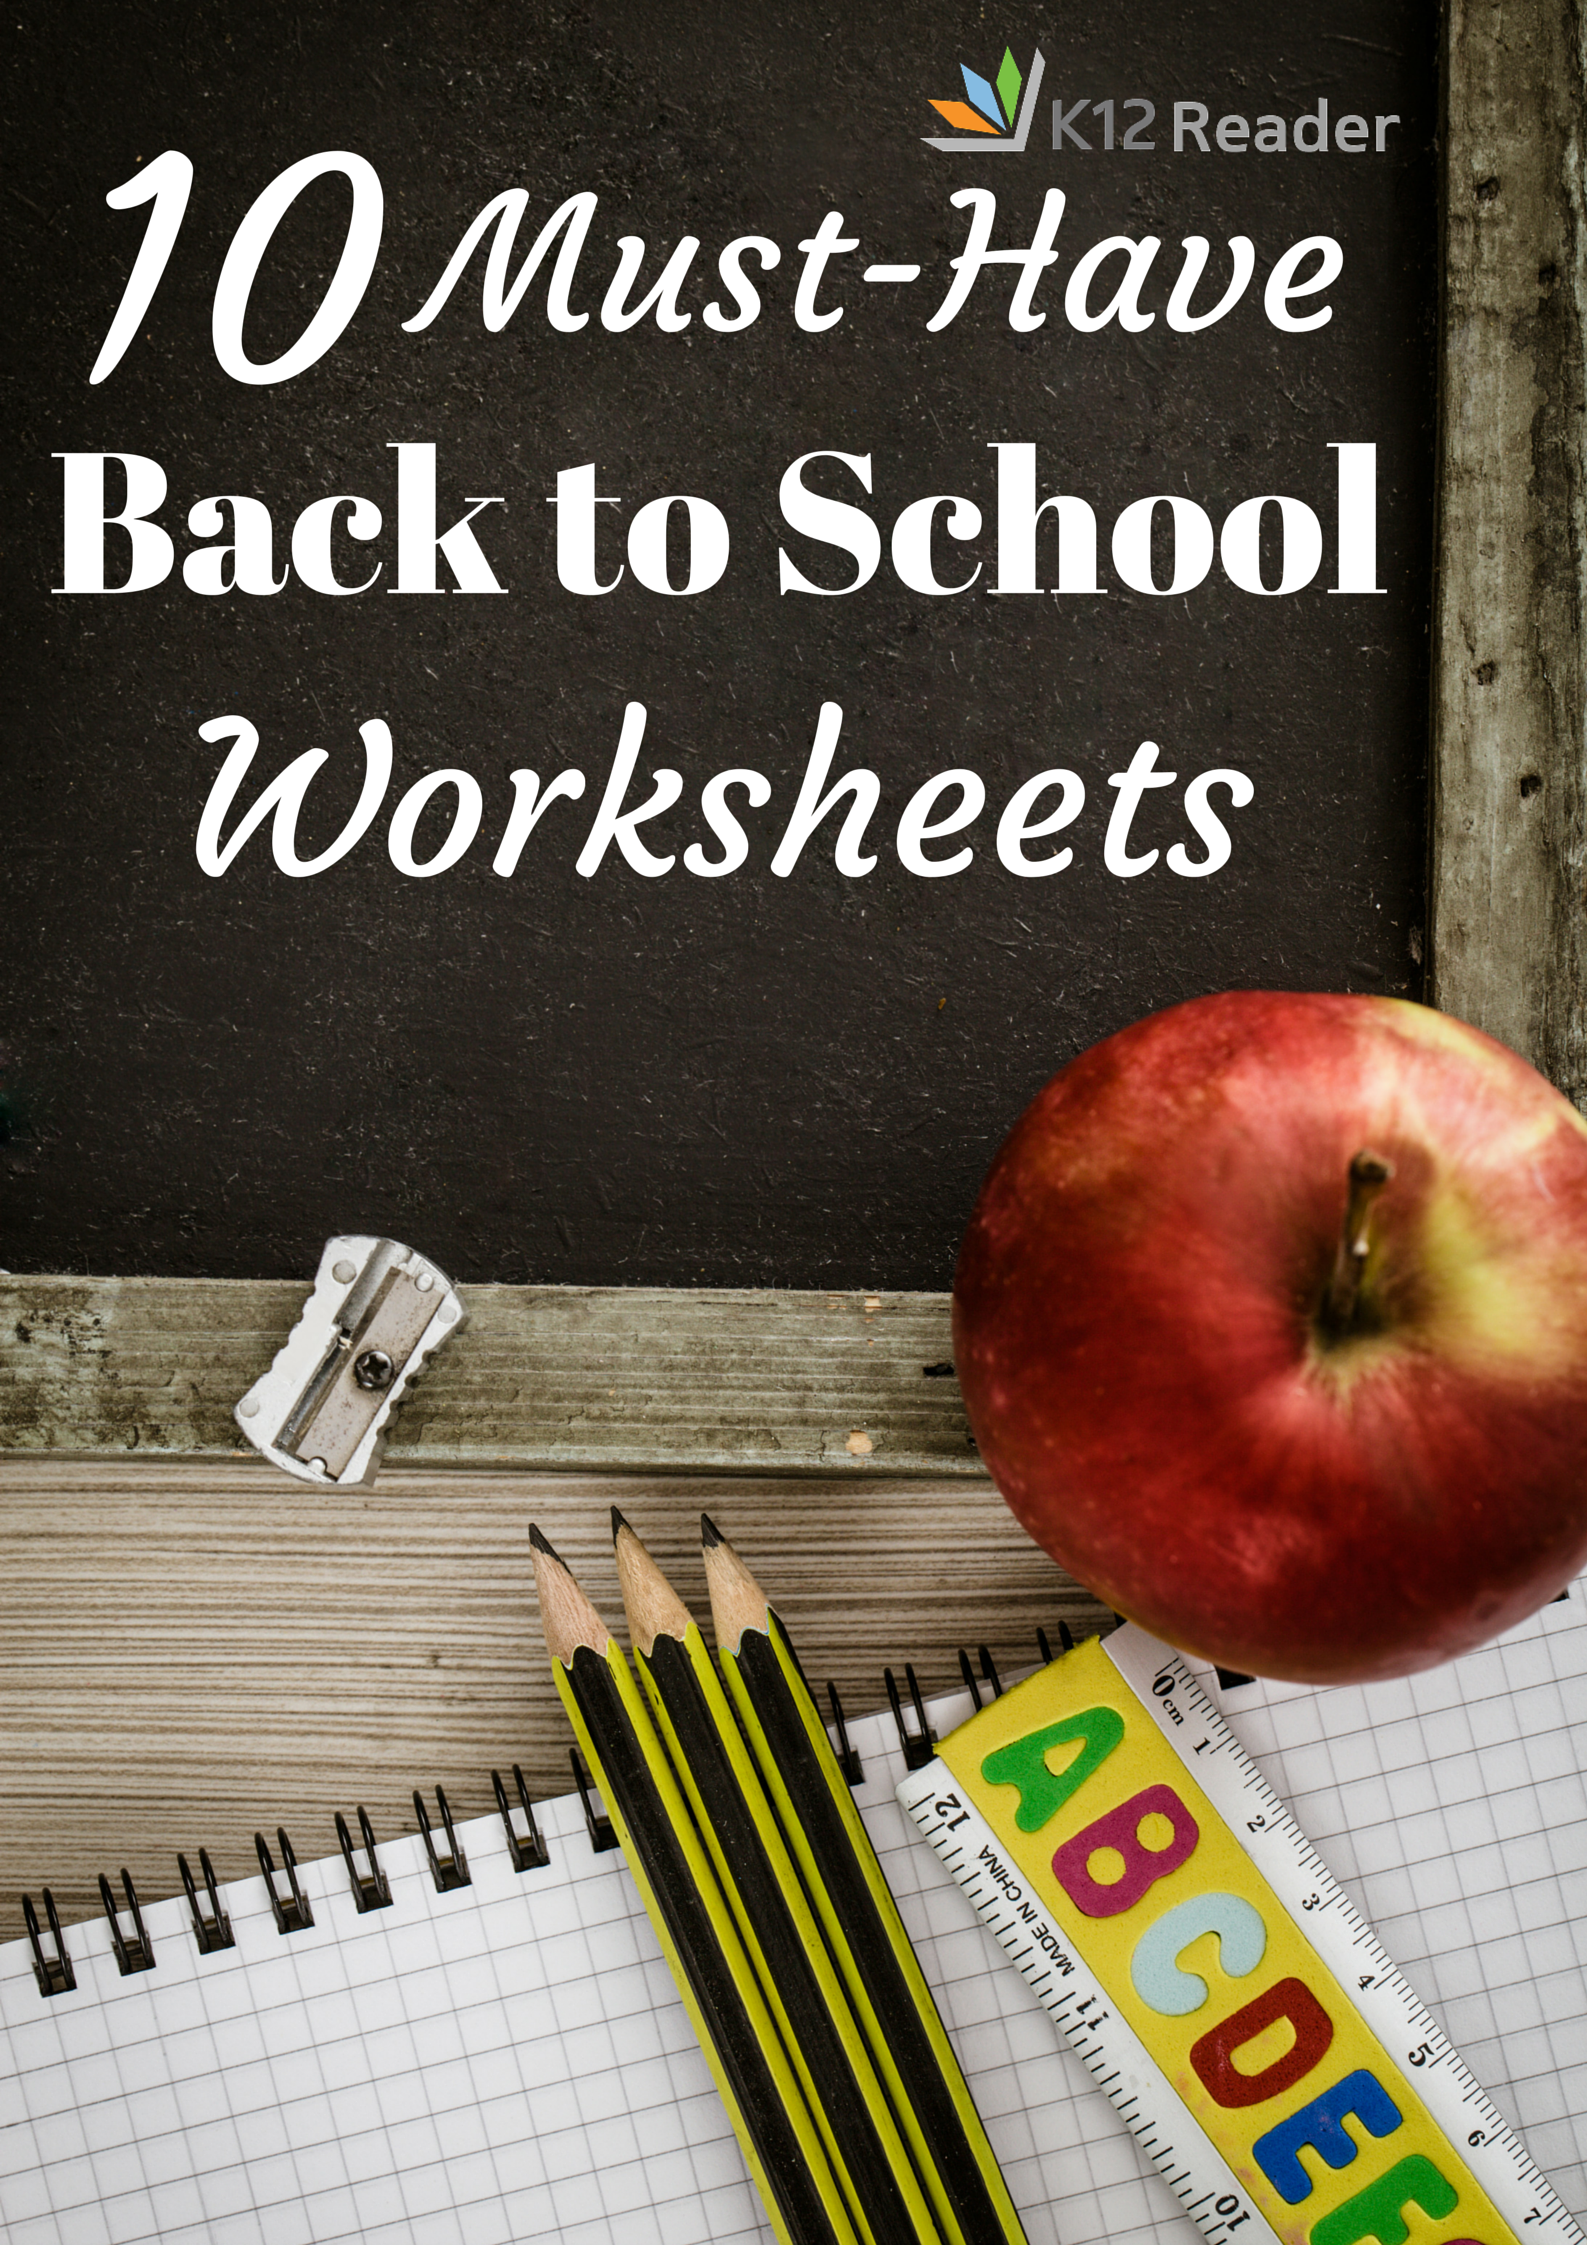 Free Printable Back To School Worksheets That Are Sure To Bring Some Fun Into The Classroom